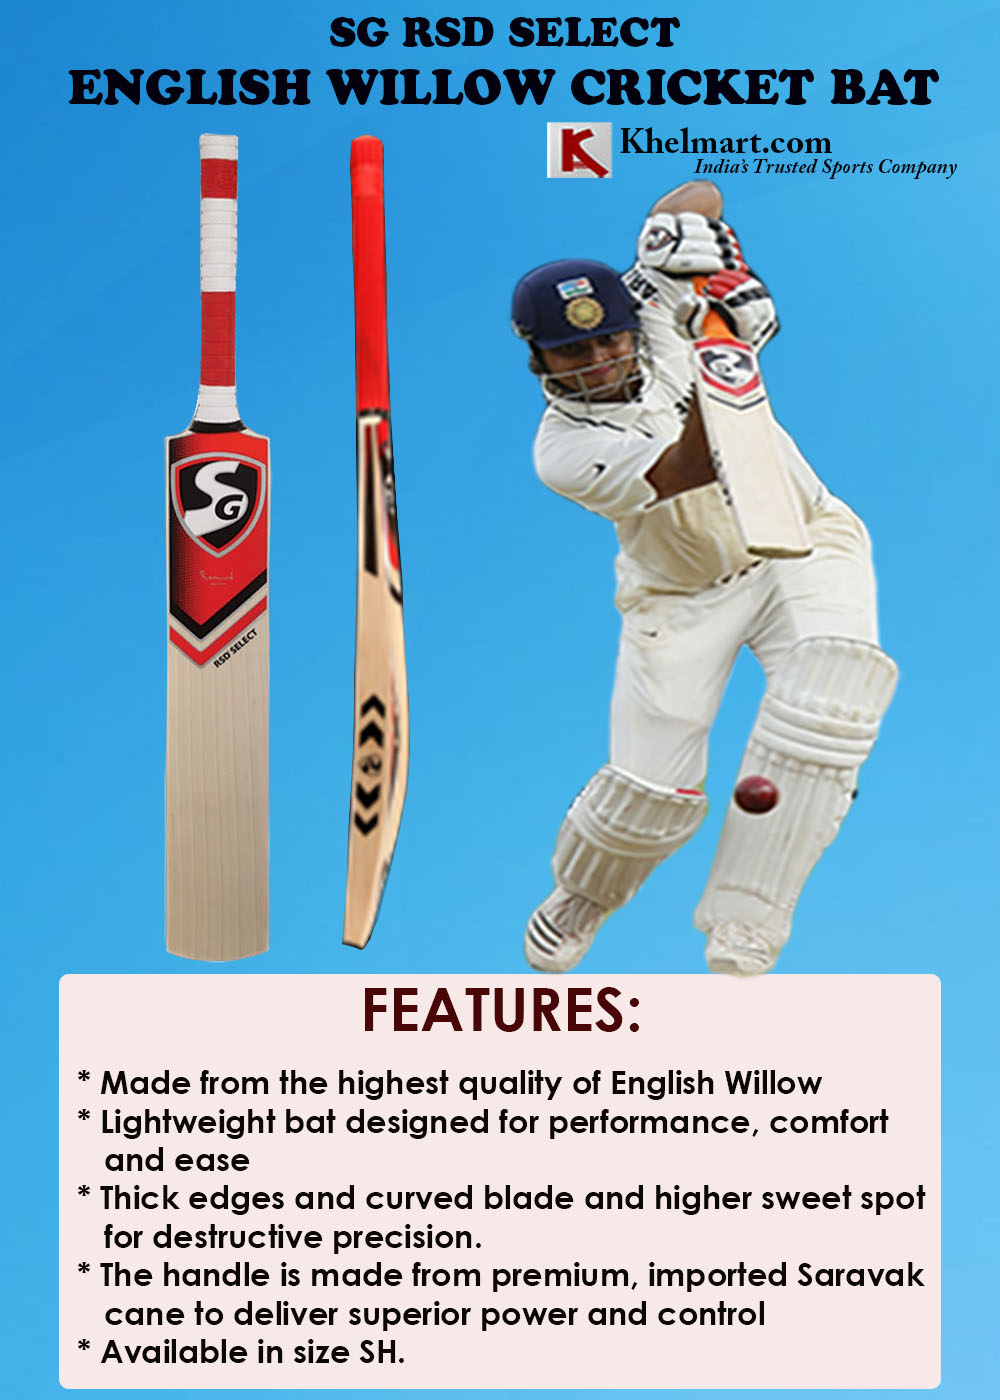 SG RSD Select English WillowCricket Bat